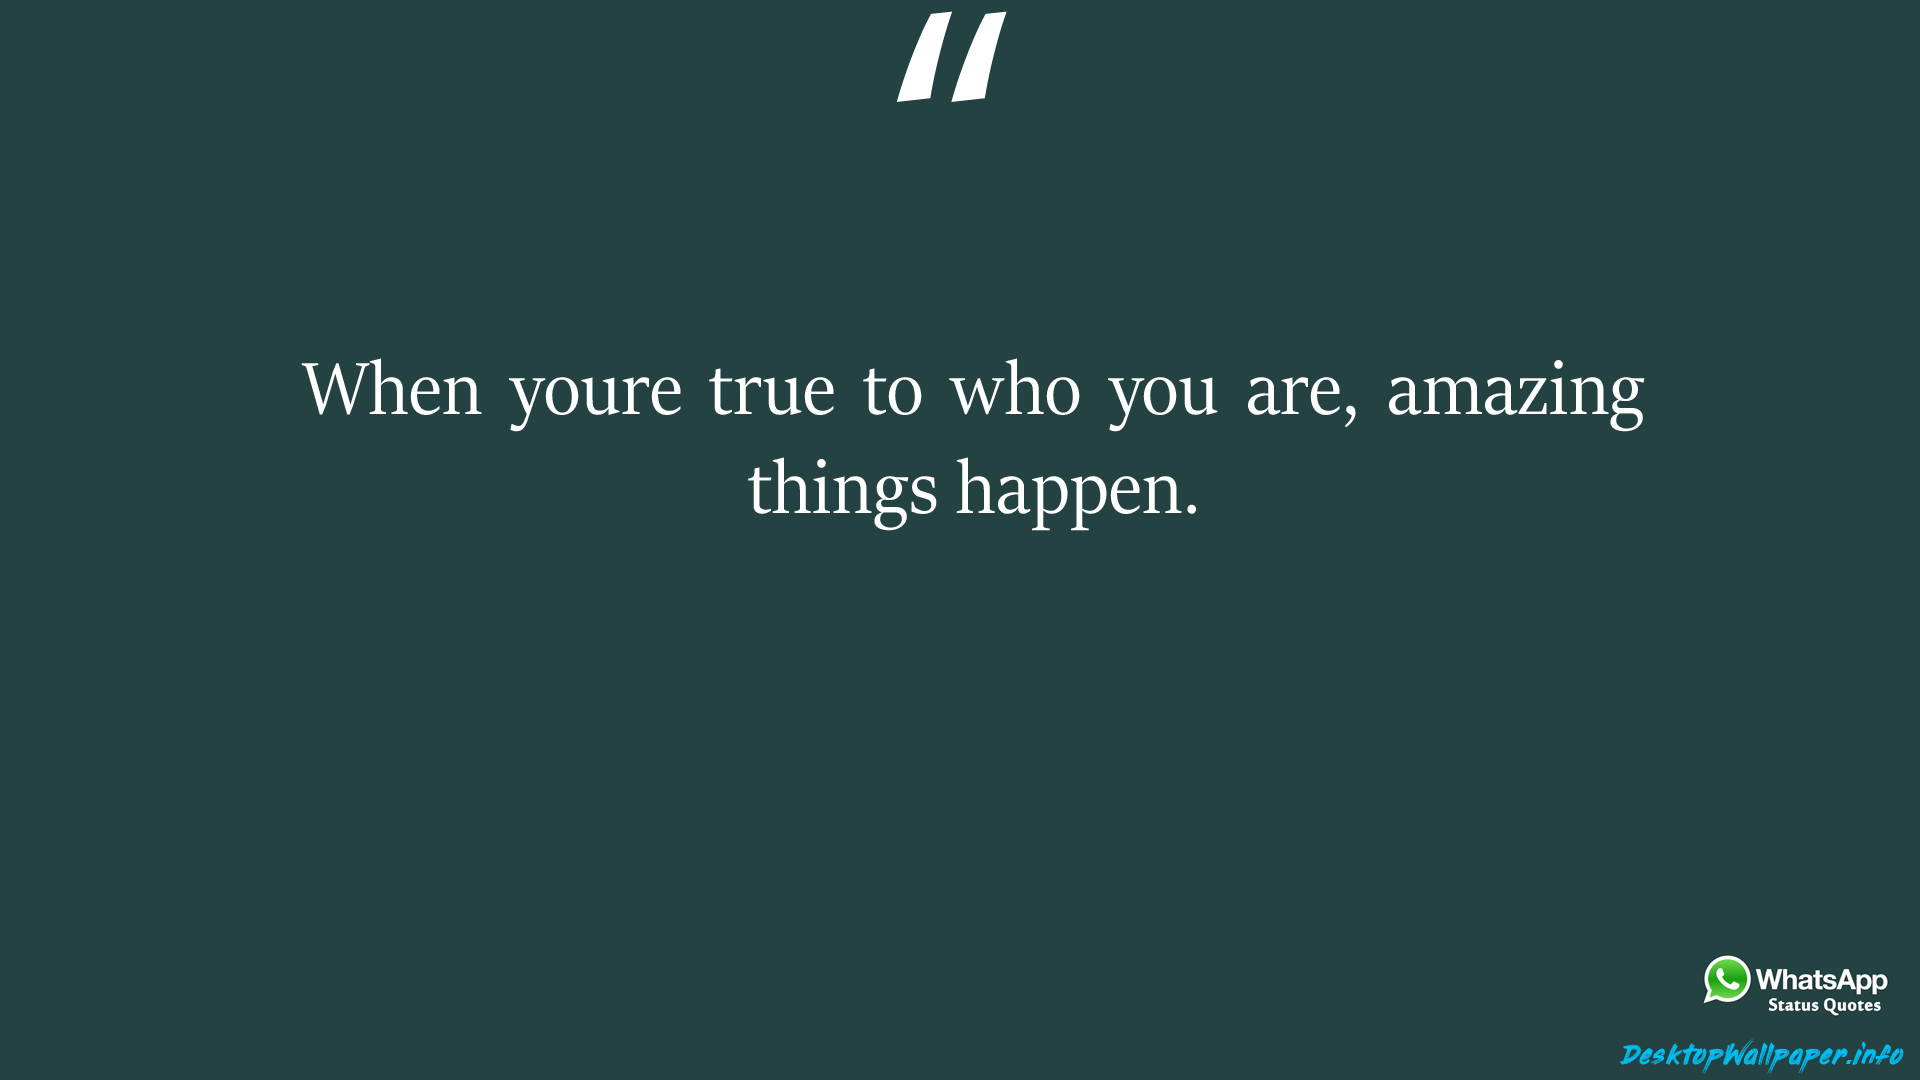 When youre true to who you are amazing things happen